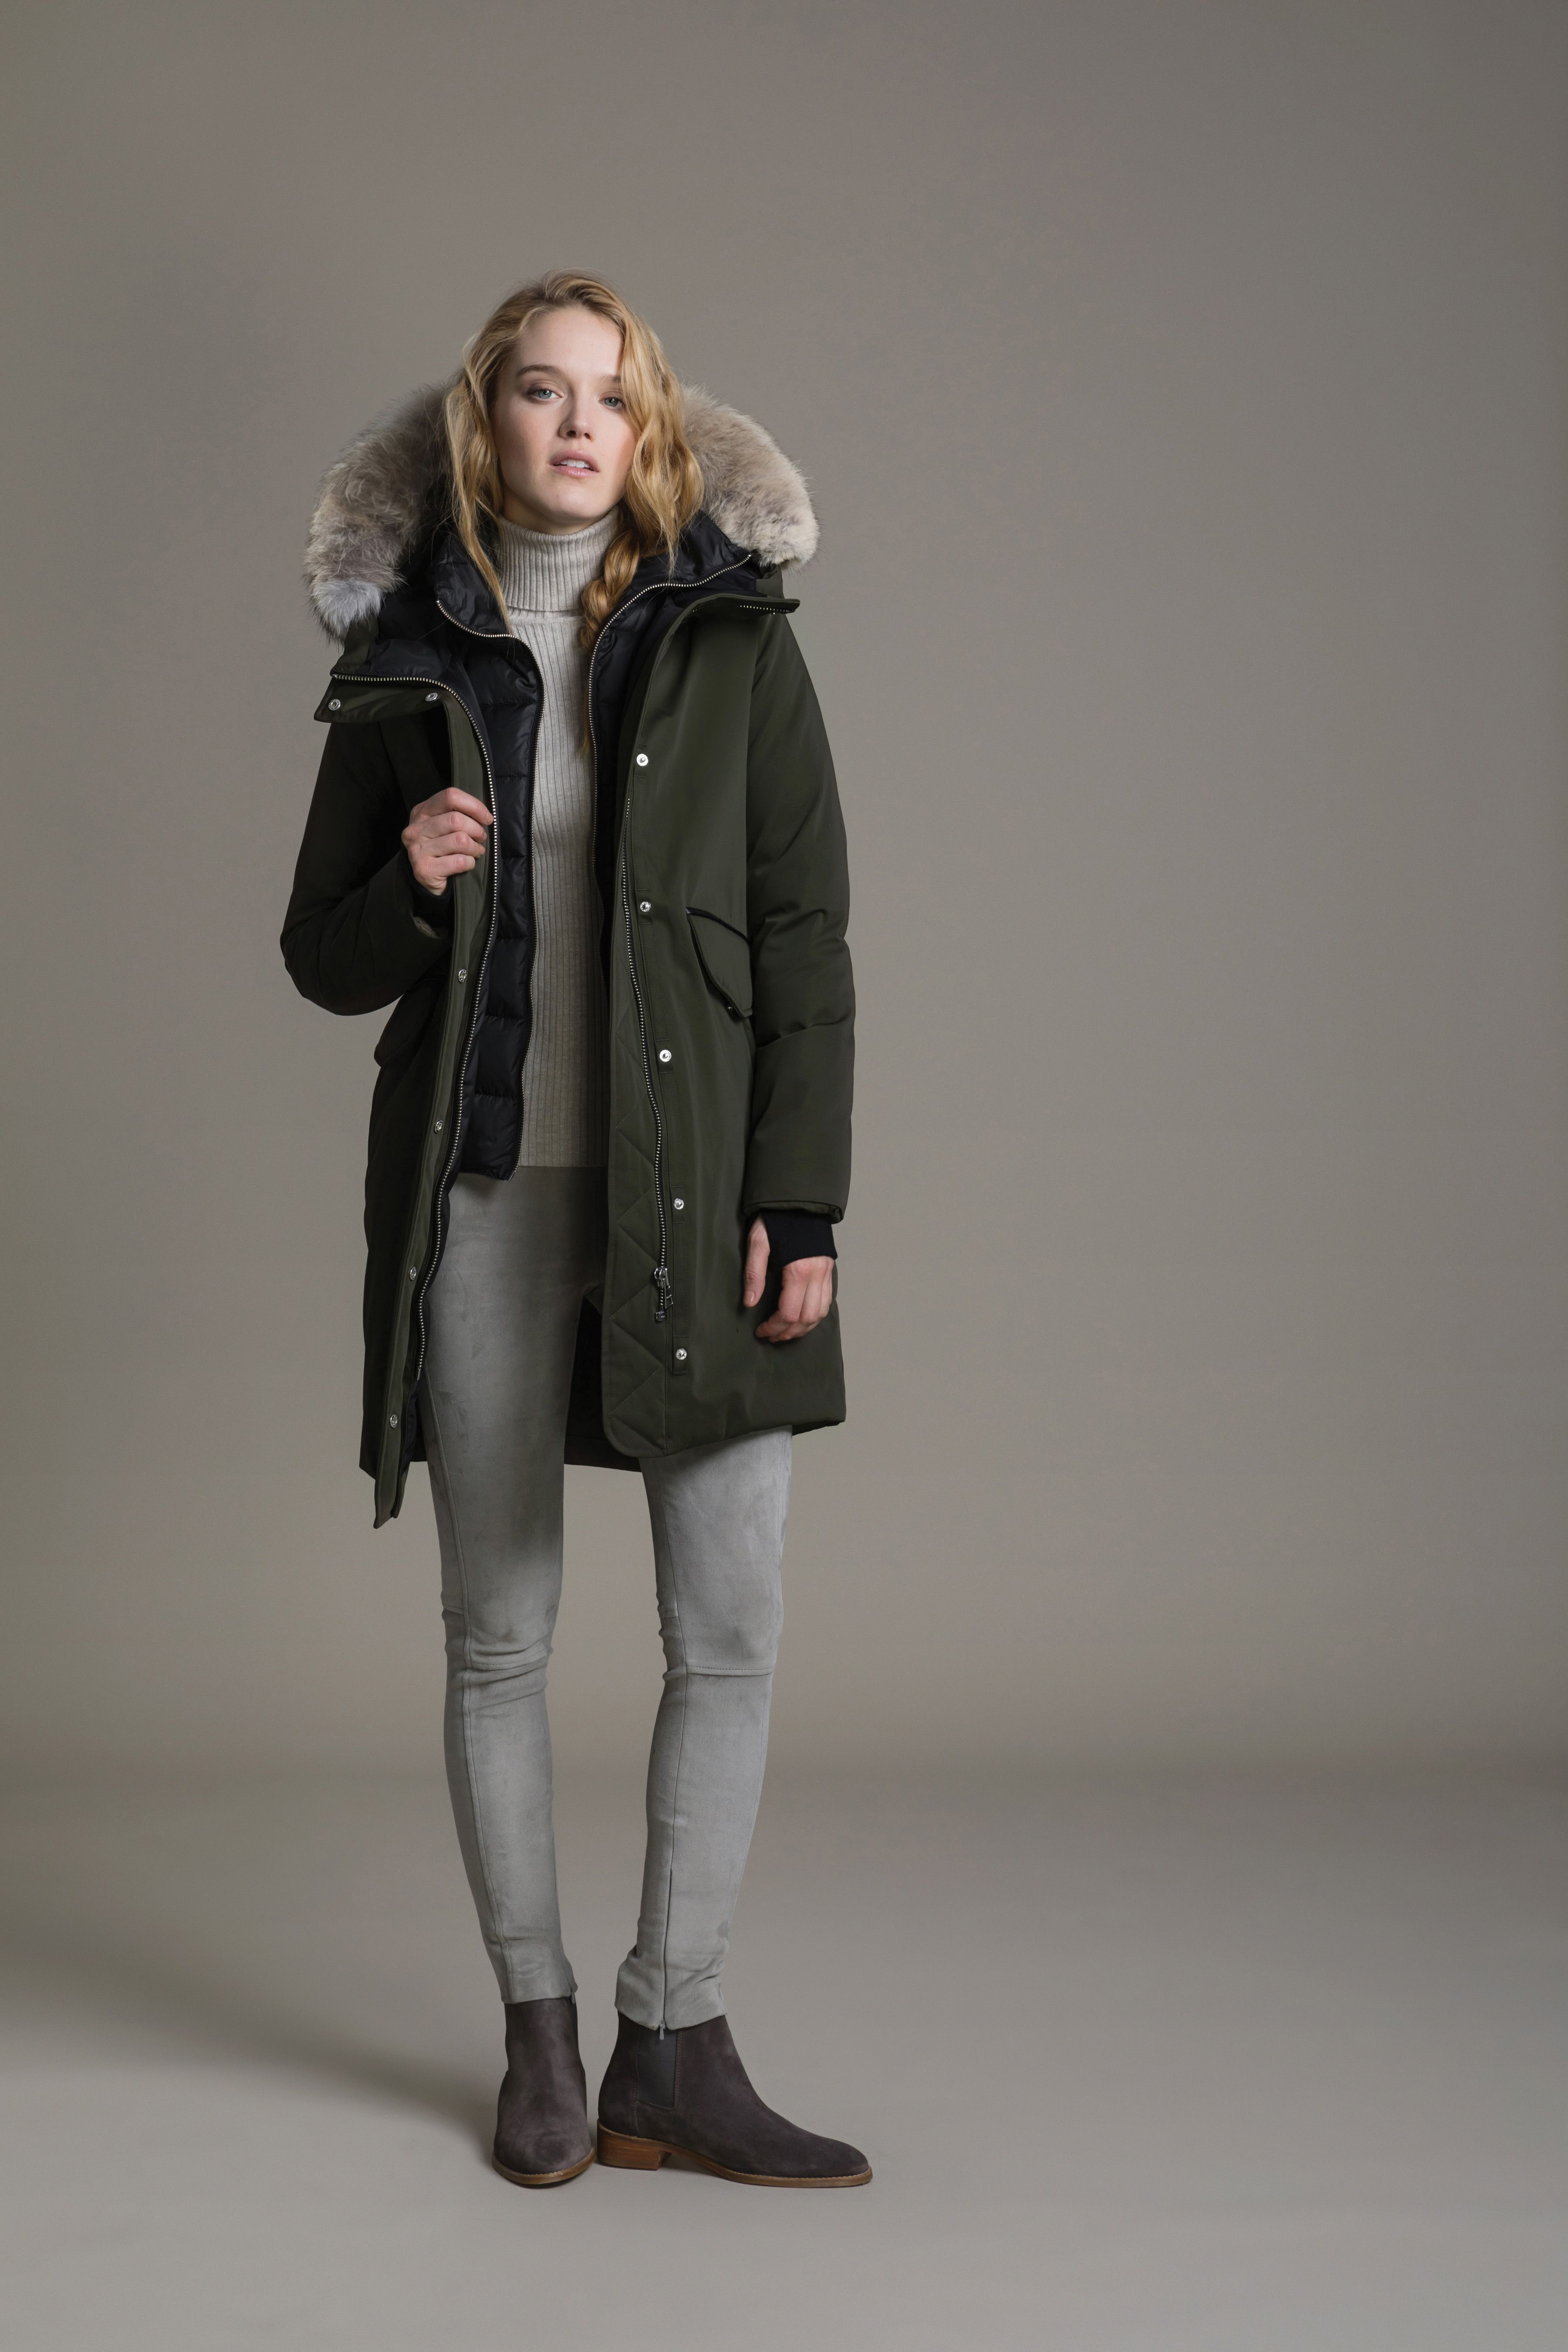 4361fe903ea4b PAYTON by SOIA & KYO is a straight-fit, mid-length down coat with a  face-framing hood and leather trim detail. Designed with a high-low hemline  and back ...